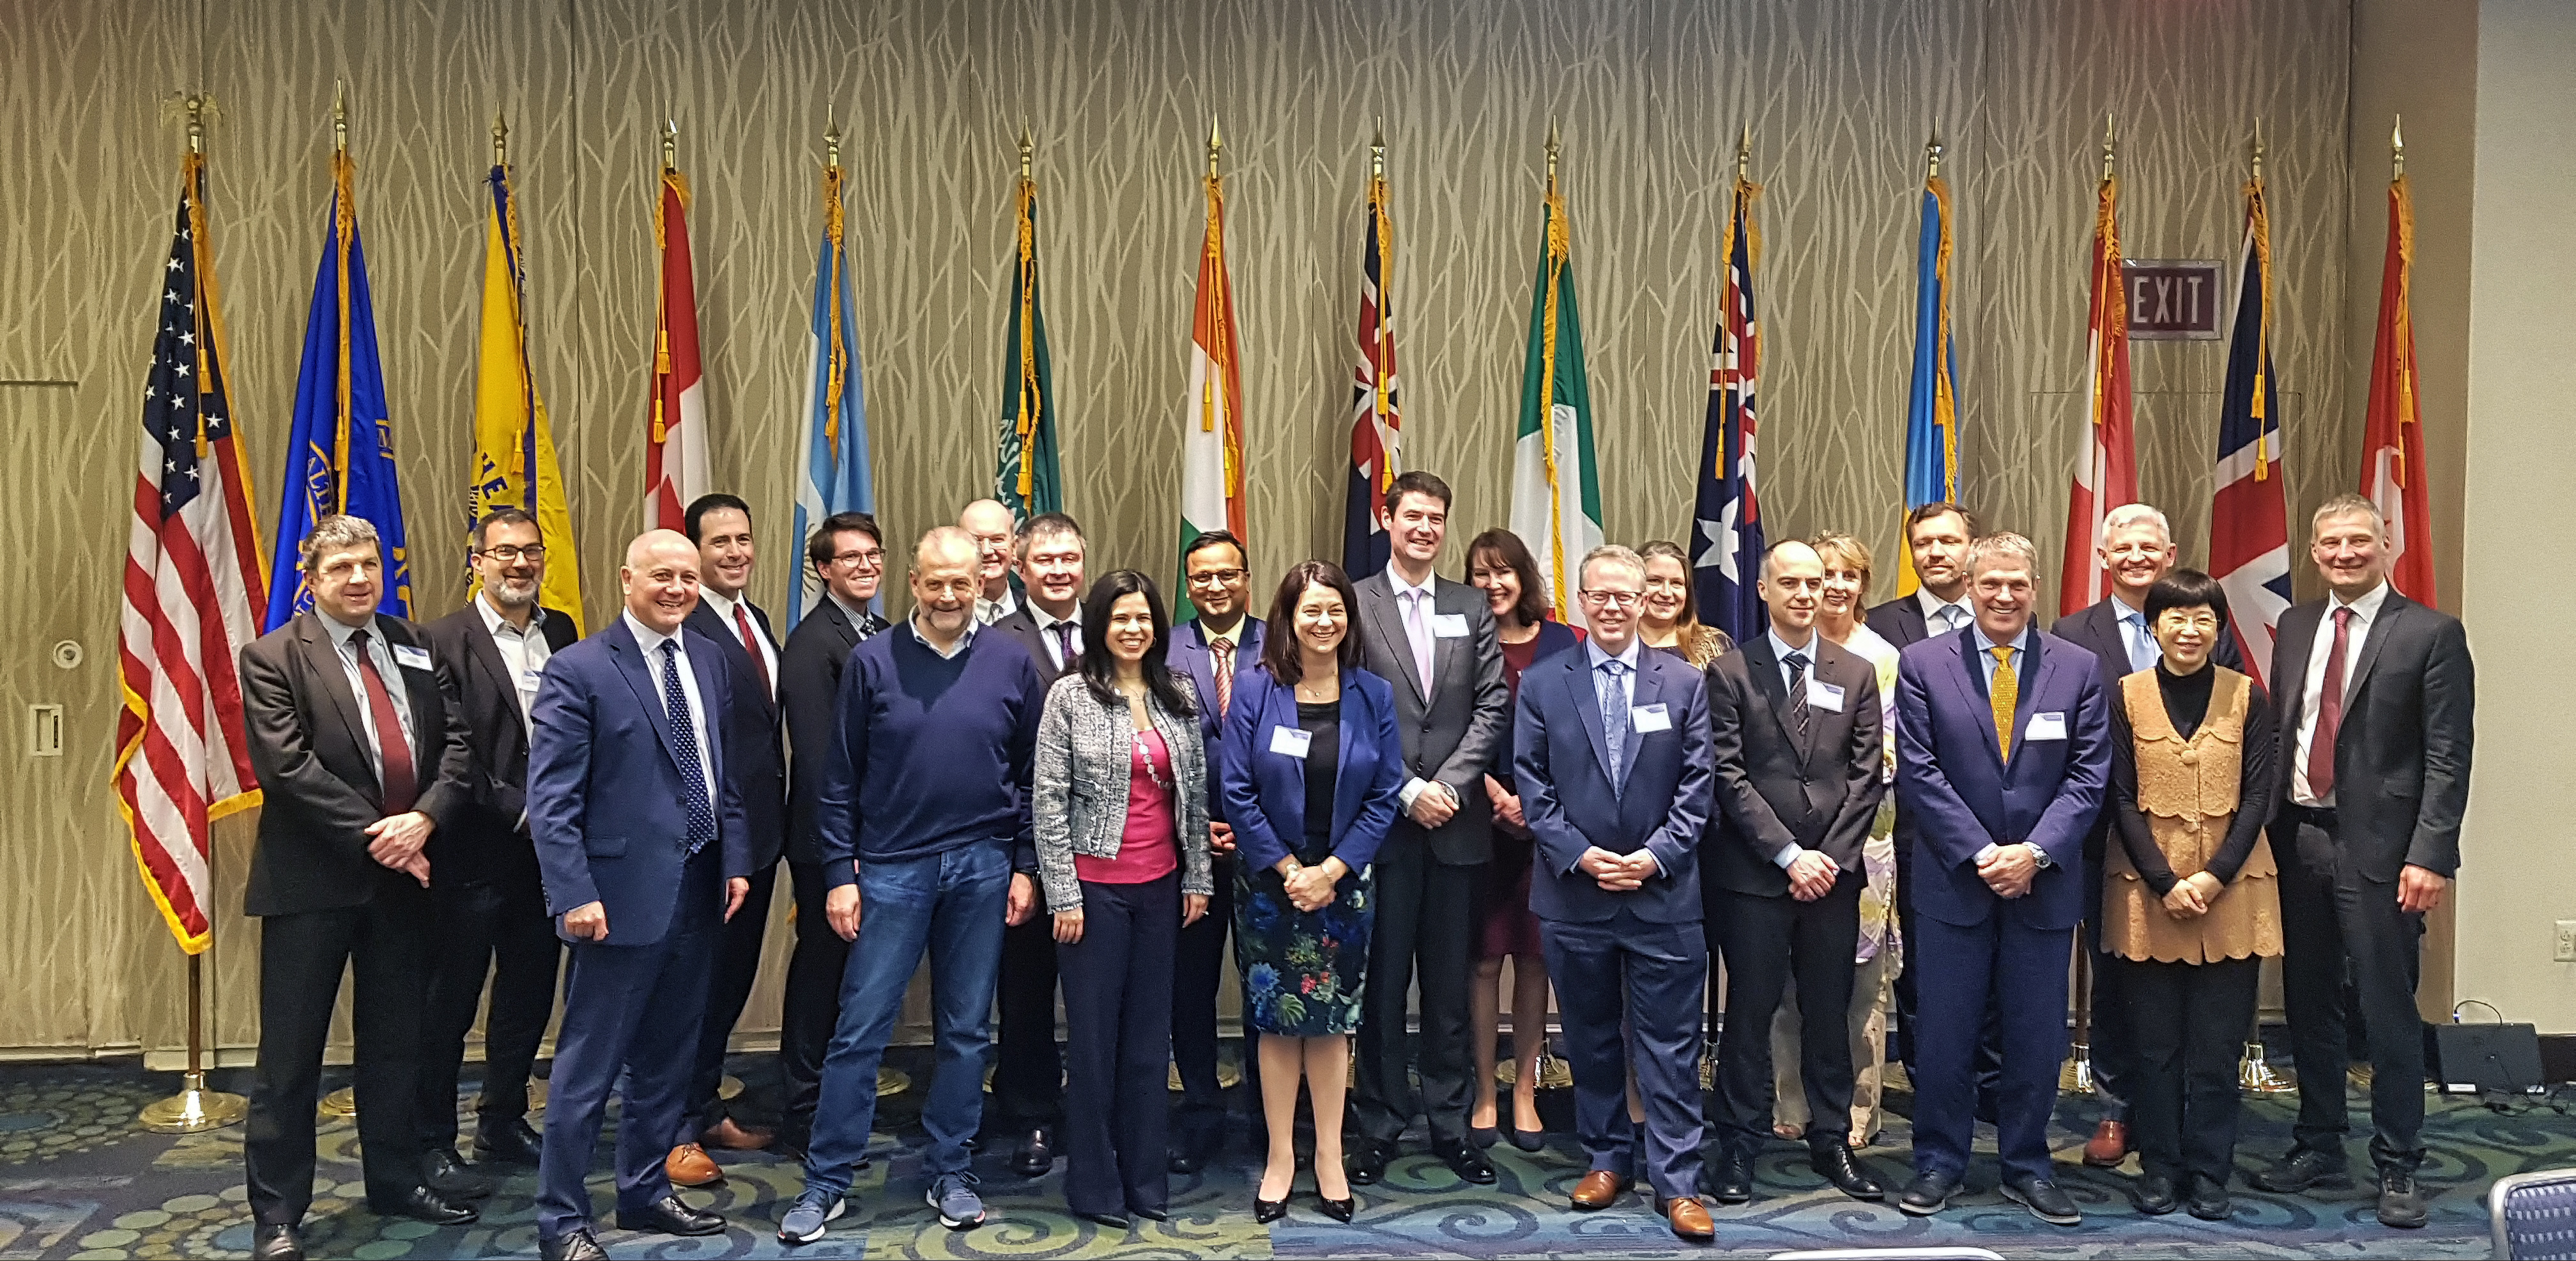 Australian Digital Health Agency CEO Tim Kelsey and Chief Medical Adviser Meredith Makeham with participants at the second Global Digital Health Partnership (GDHP) Summit 2018 in Washington DC